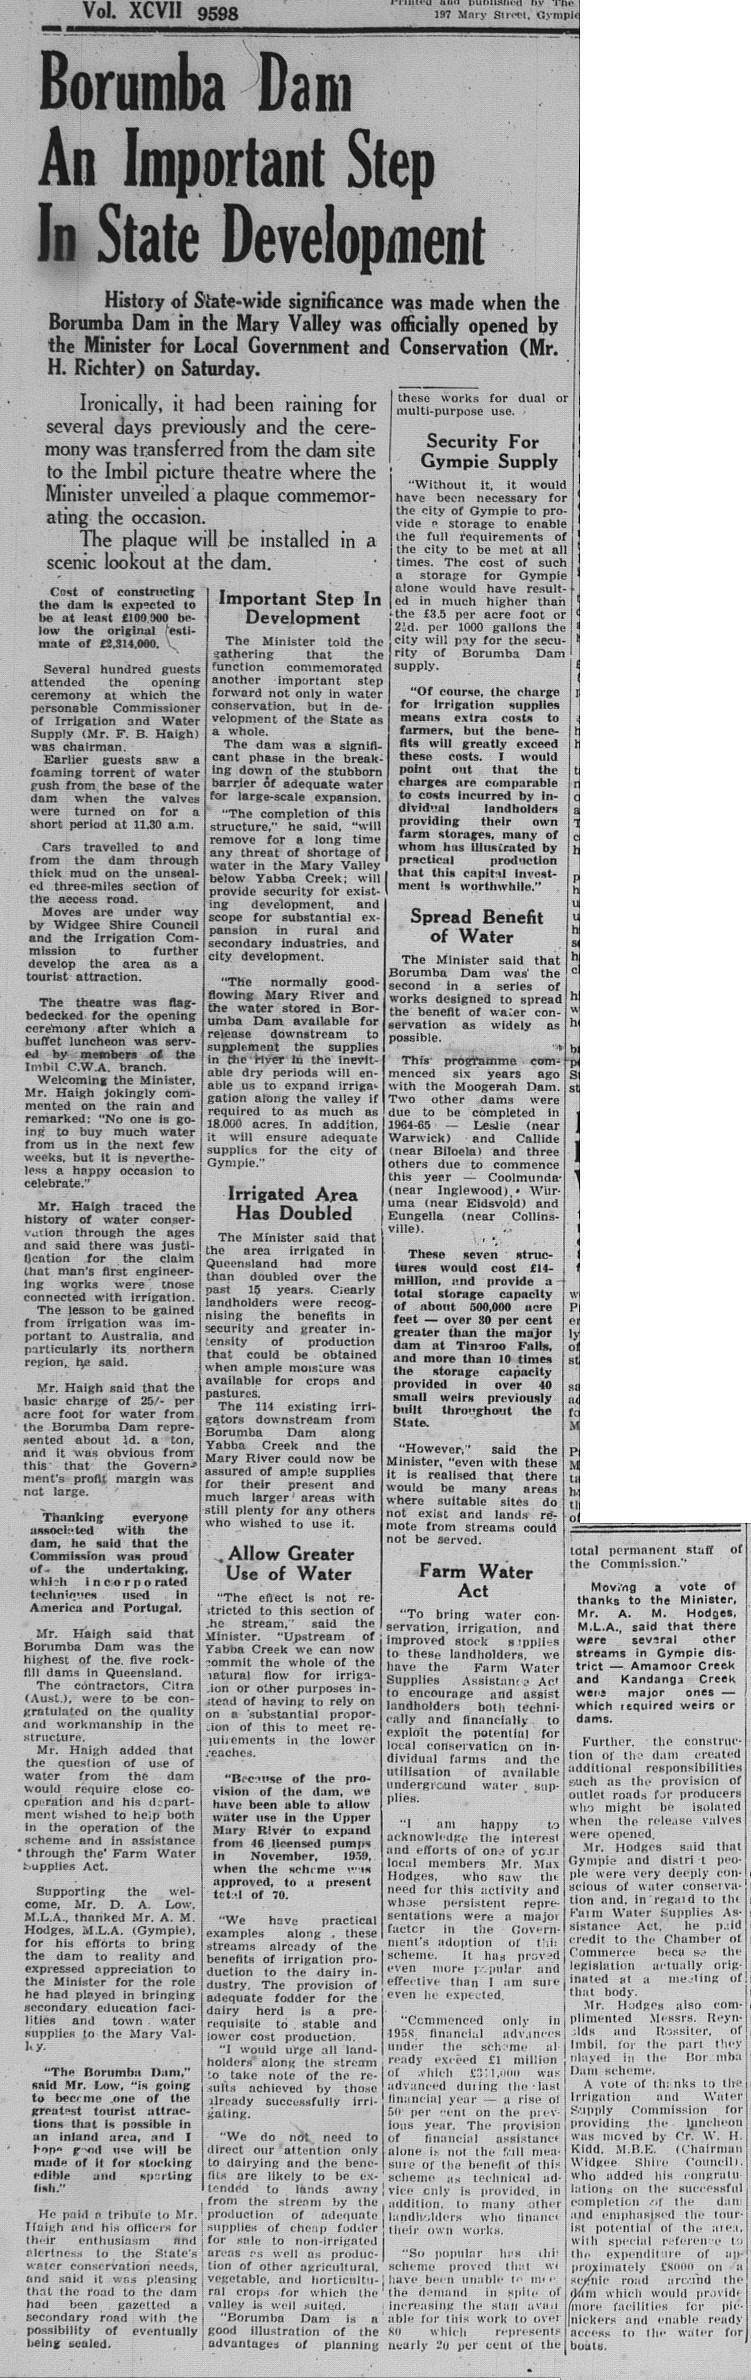 GT Tuesday, September 15, 1964 p. 1 Borumba Dam an important step in State Development